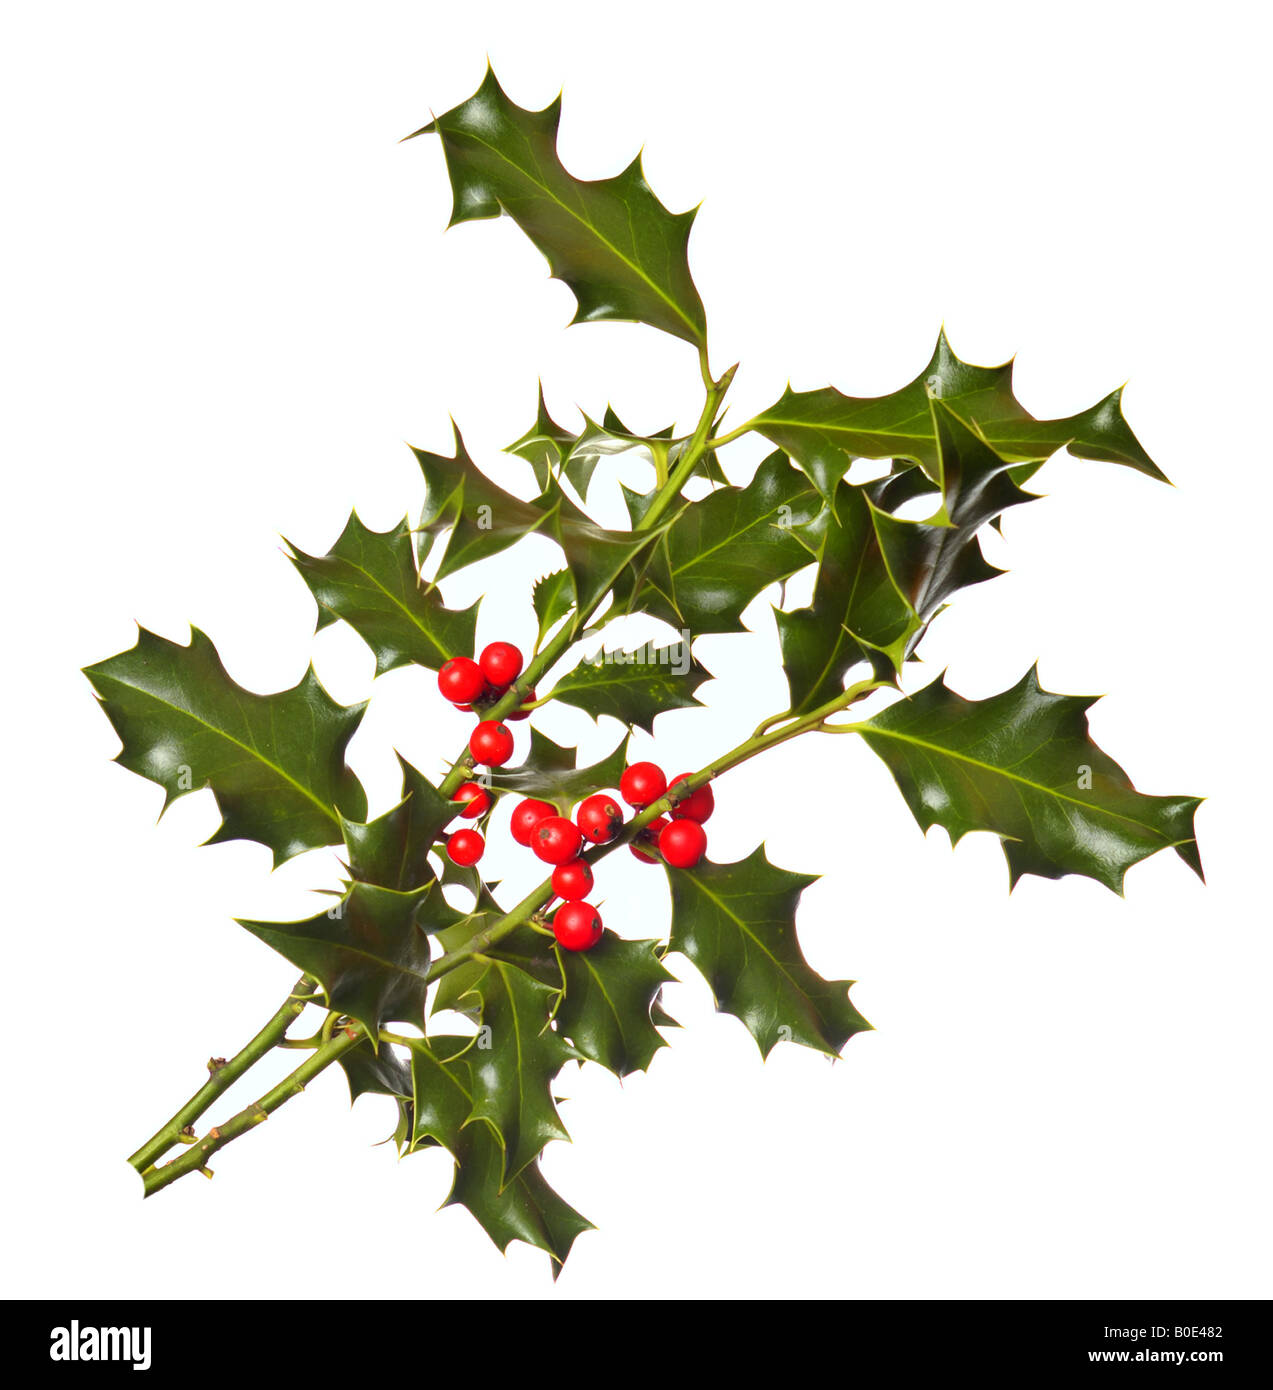 Two branches of real holly with red berries isolated on a white background - Stock Image